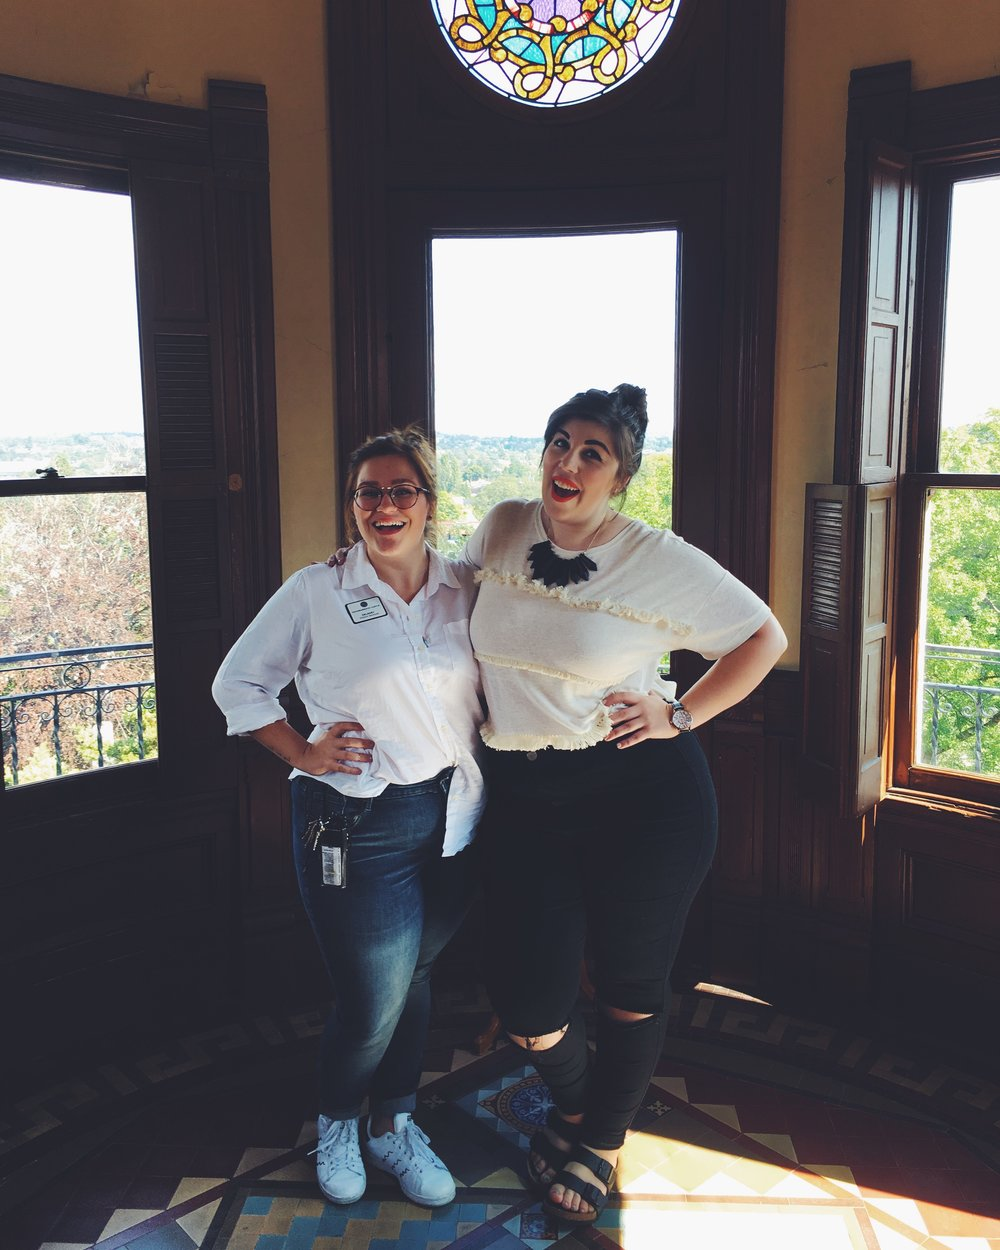 "Delaney is a Floor Supervisor at the castle so she gave us an extra special behind-the-scenes tour. Ps. Fun Fact: Craigdarroch Castle is actually a Bonanza Castle instead of just a castle which means they were ""massive houses built for entrepreneurs who became wealthy during the industrial age."" Check out their   website   for more history about the castle!"